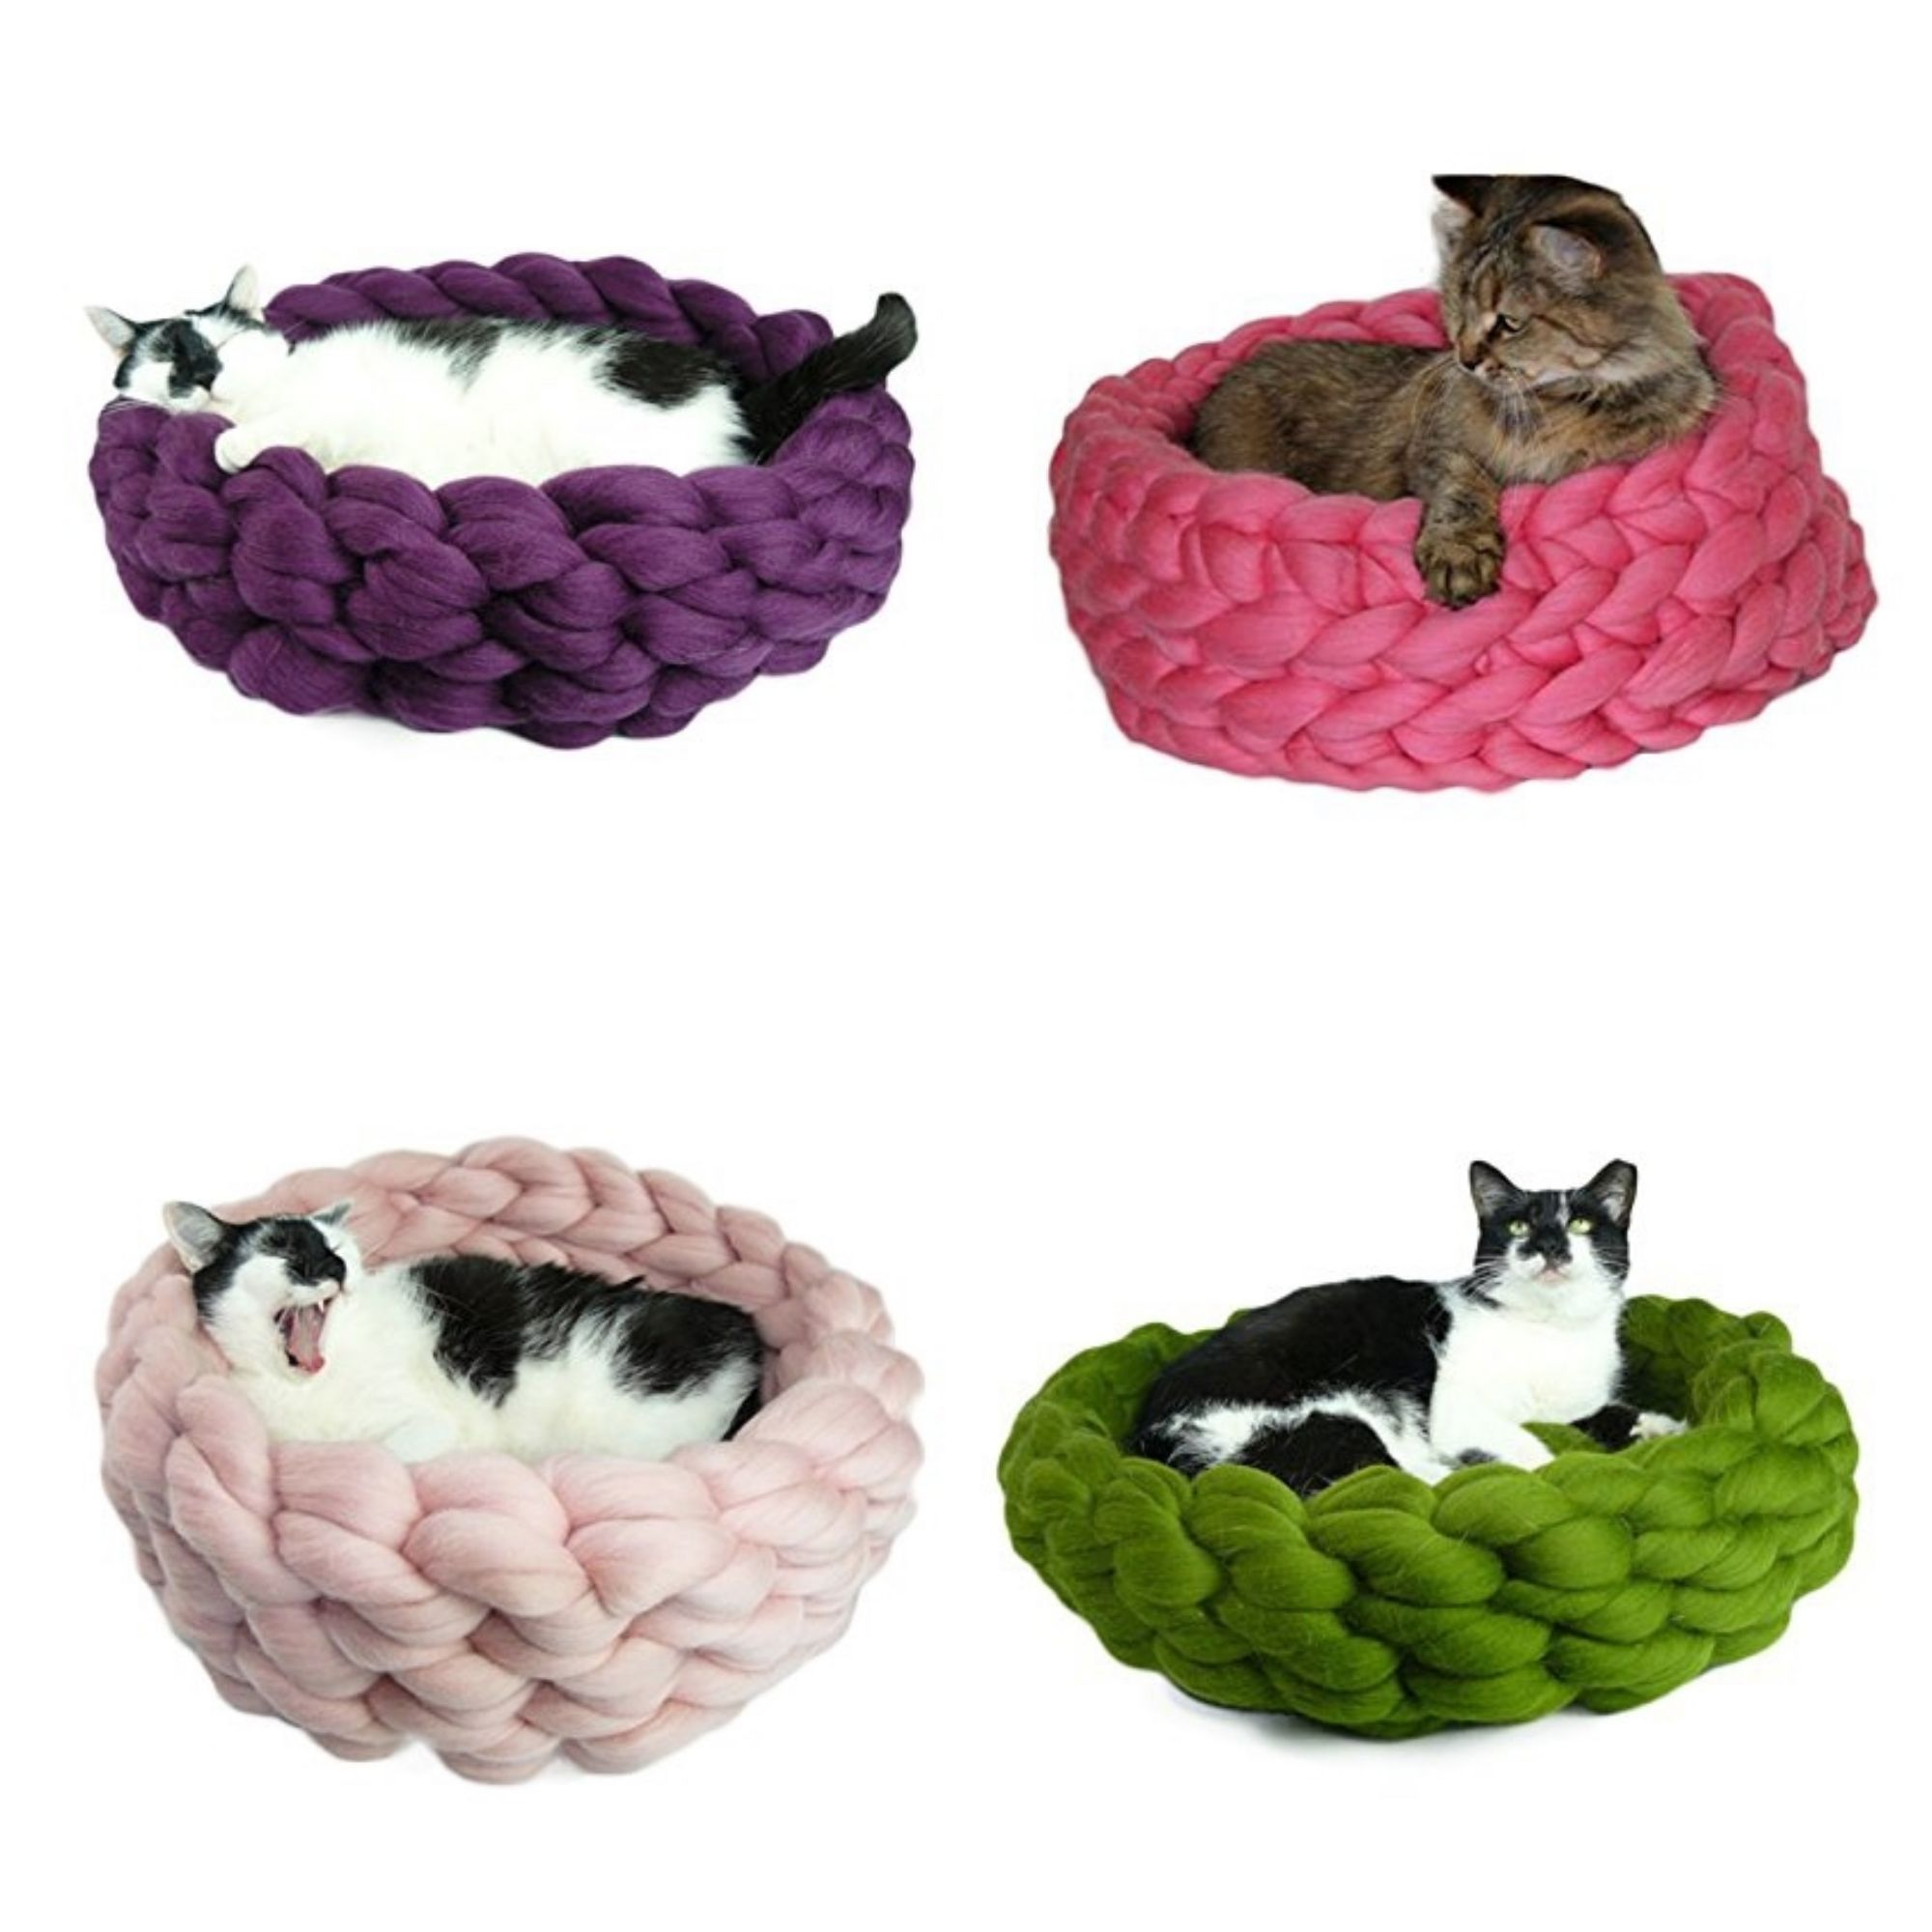 Best gifts for cats and cat lovers cat lover gifts cat